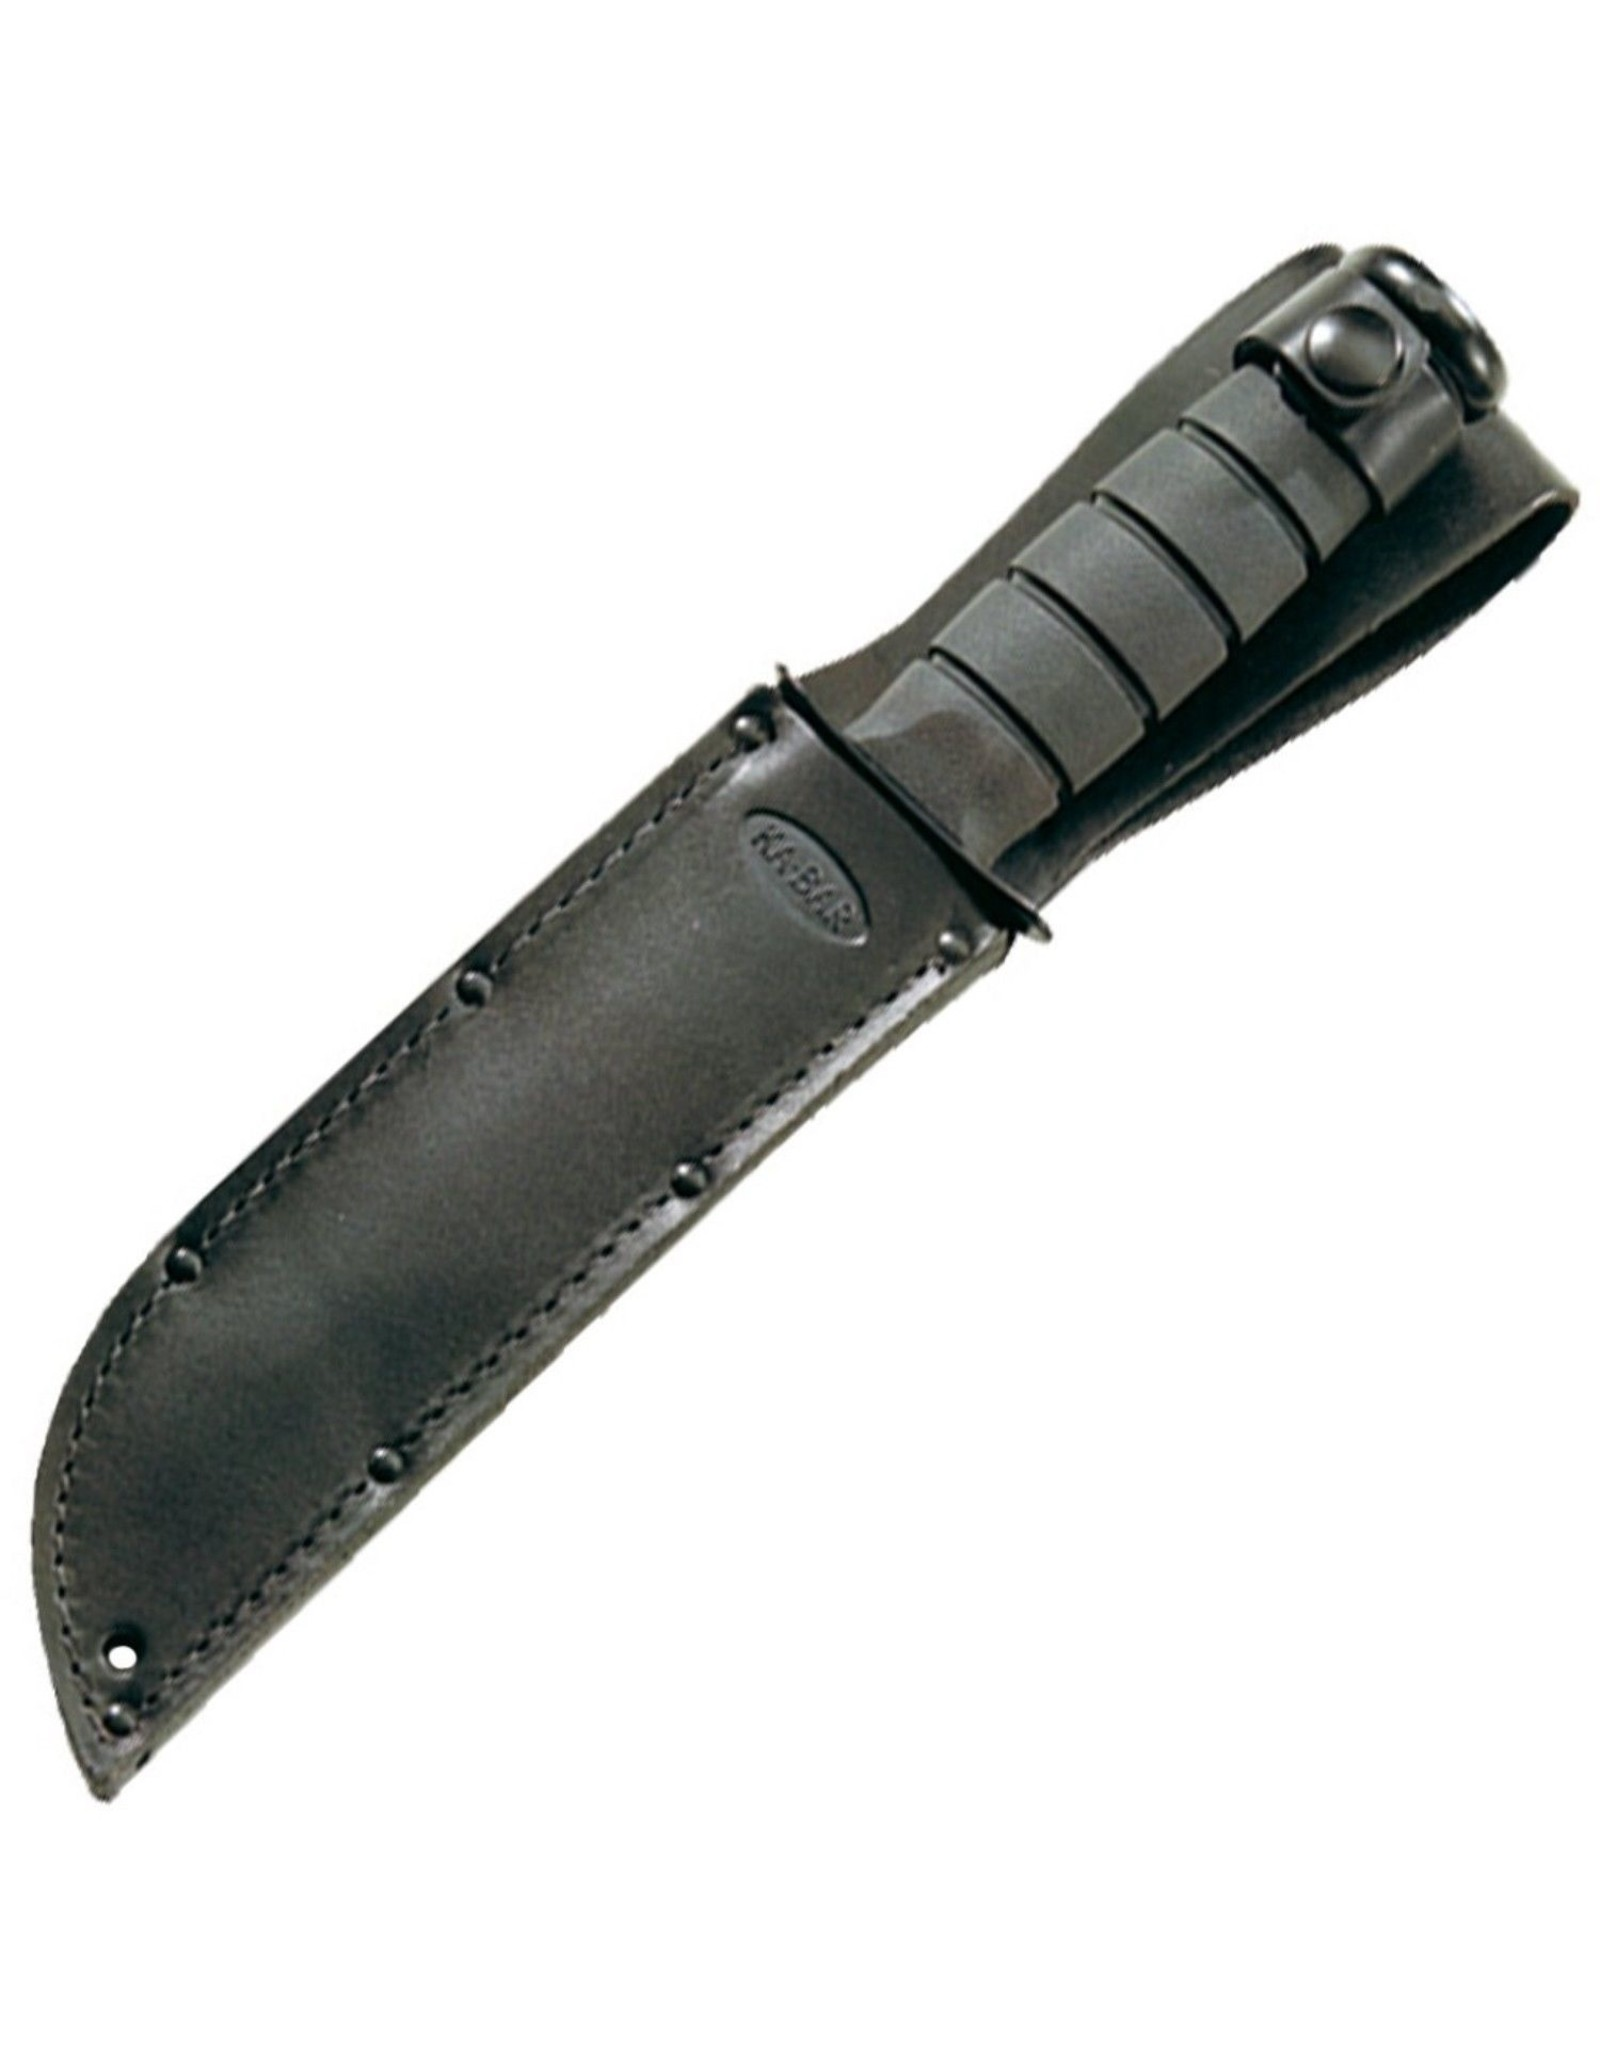 KA-BAR KNIVES KA -Bar Knife 02-1211